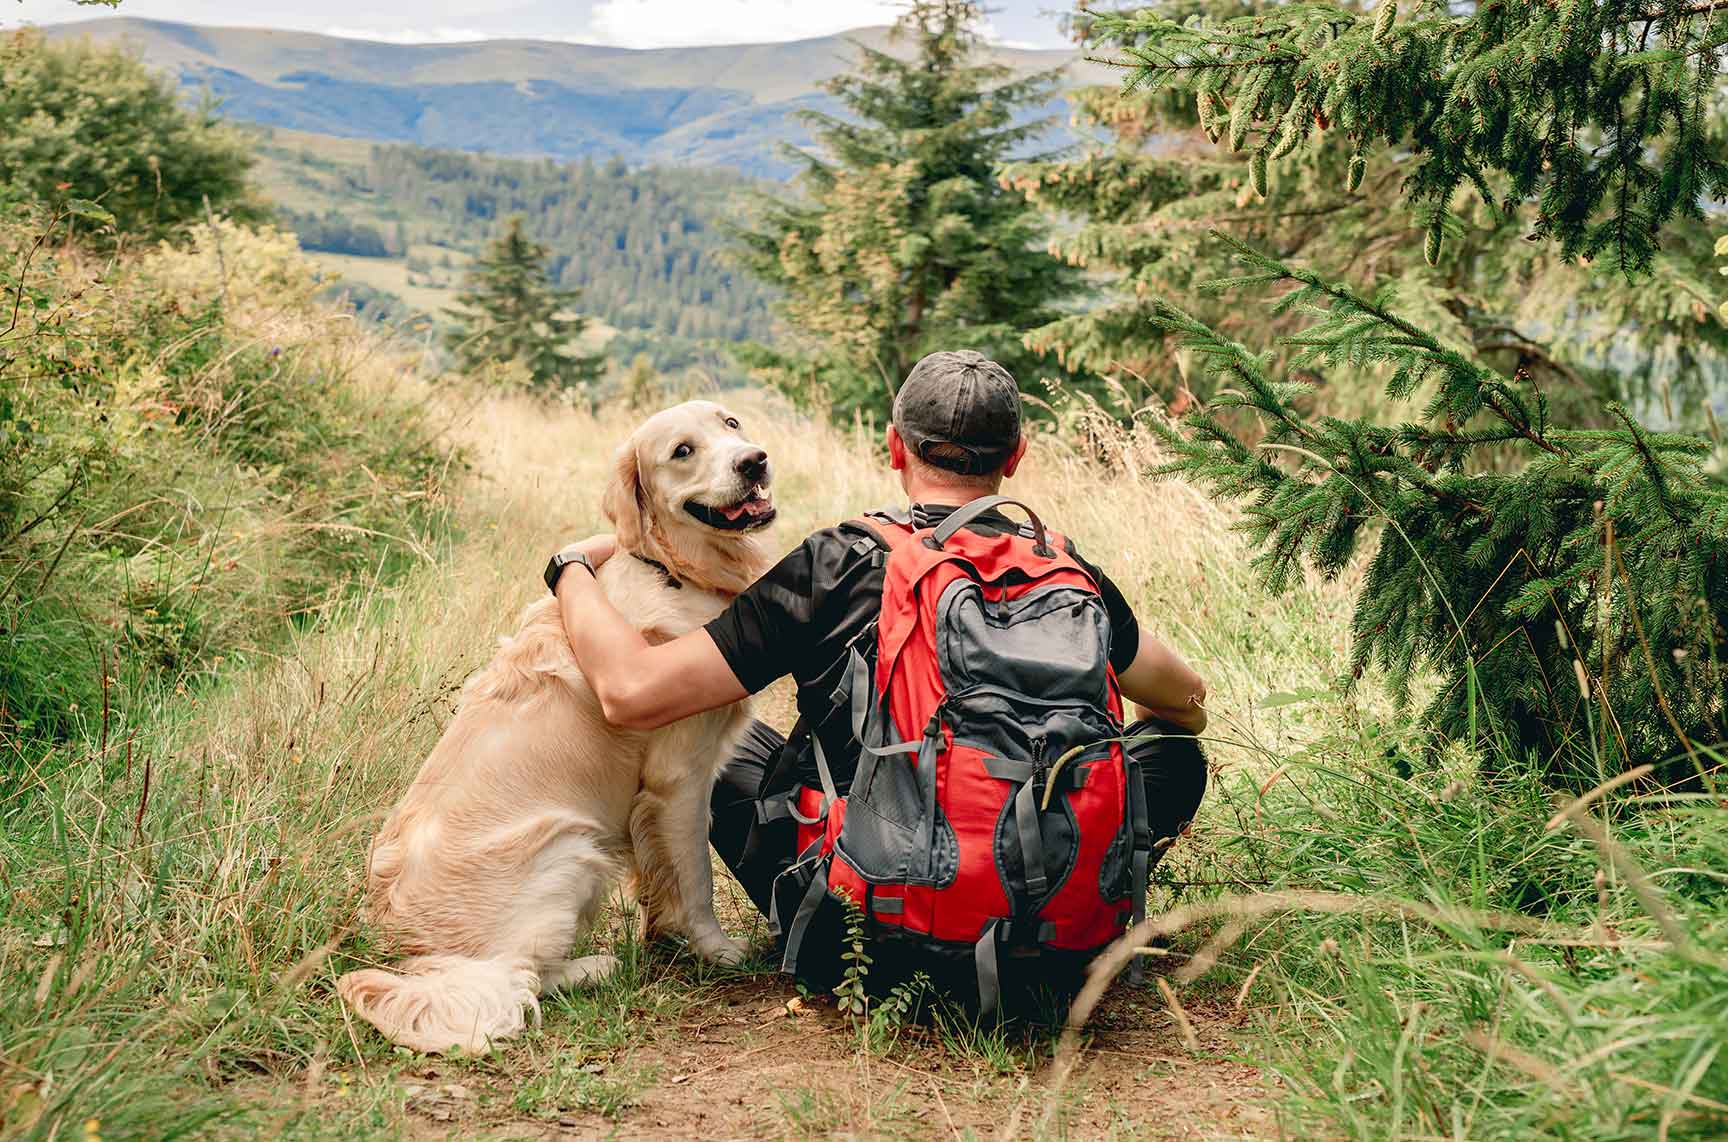 man-sitting-backwards-mountain-trekking-trail-golden-retriever-dog